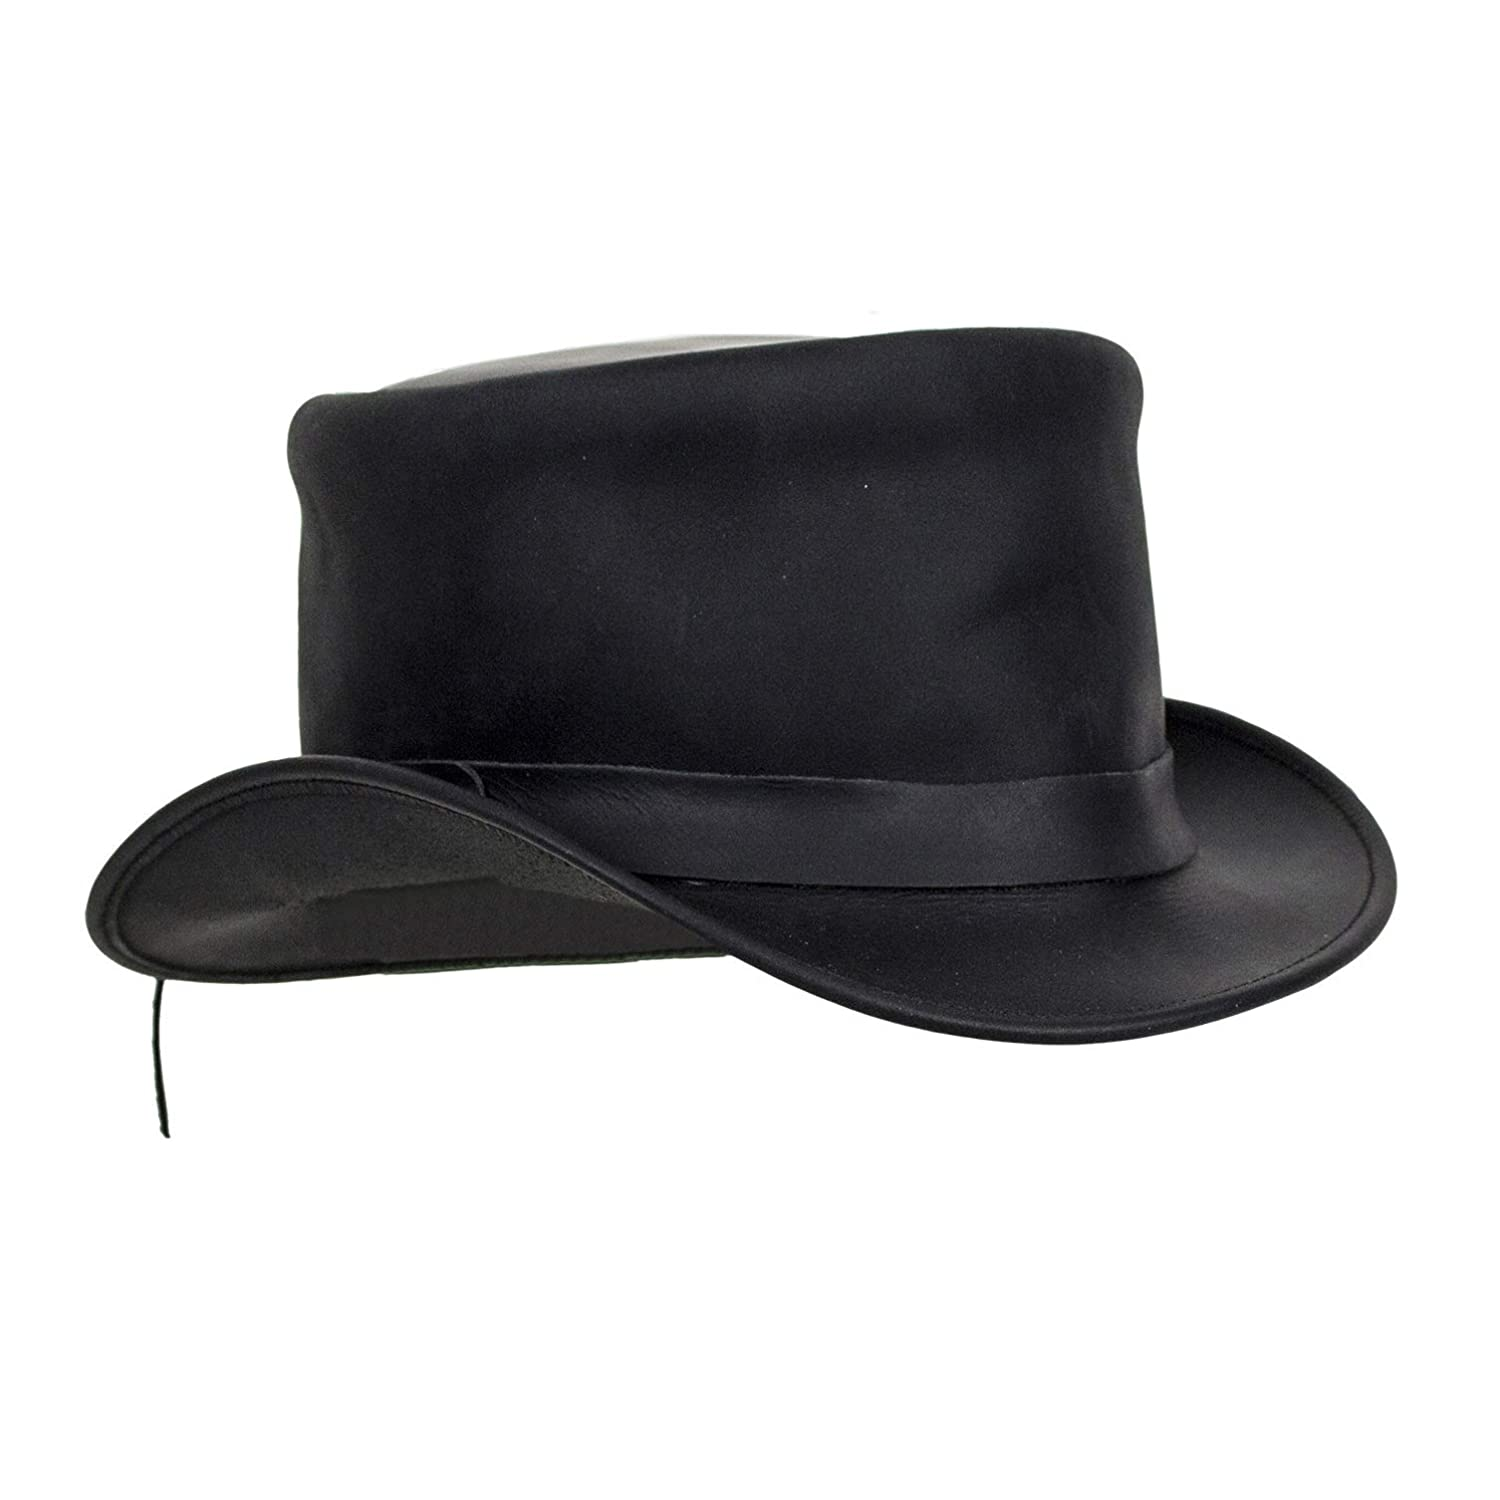 Men's Steampunk Clothing, Costumes, Fashion Black Leather Deadman Top Hat $69.00 AT vintagedancer.com